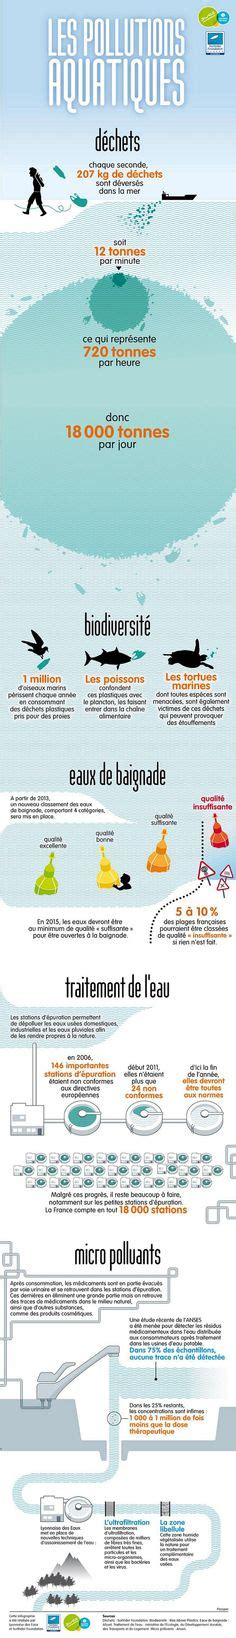 54 Best Eau images   Teaching french, Ap french, French